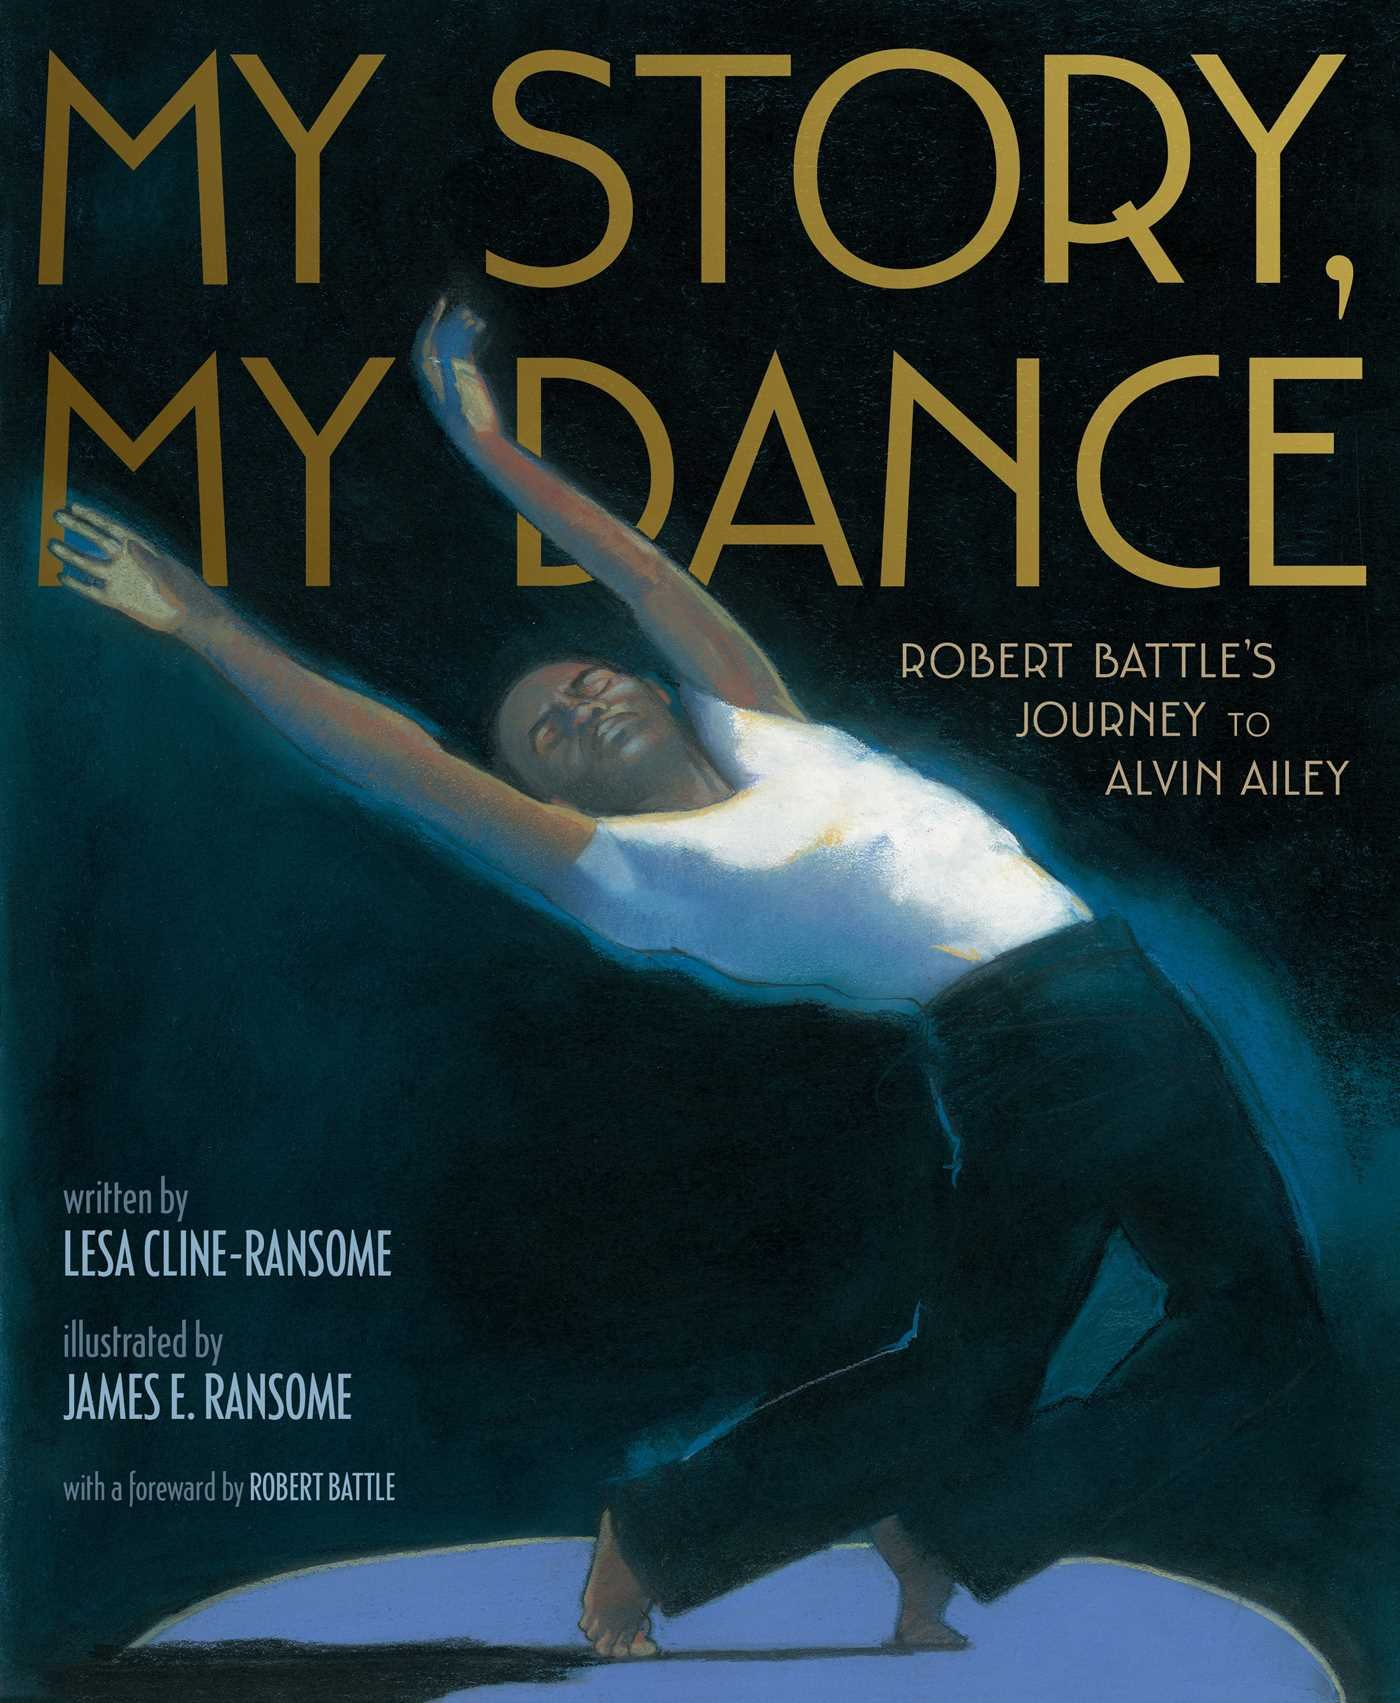 My Story, My Dance: Robert Battle's Journey to Alvin Ailey - Lesa Cline-Ransome